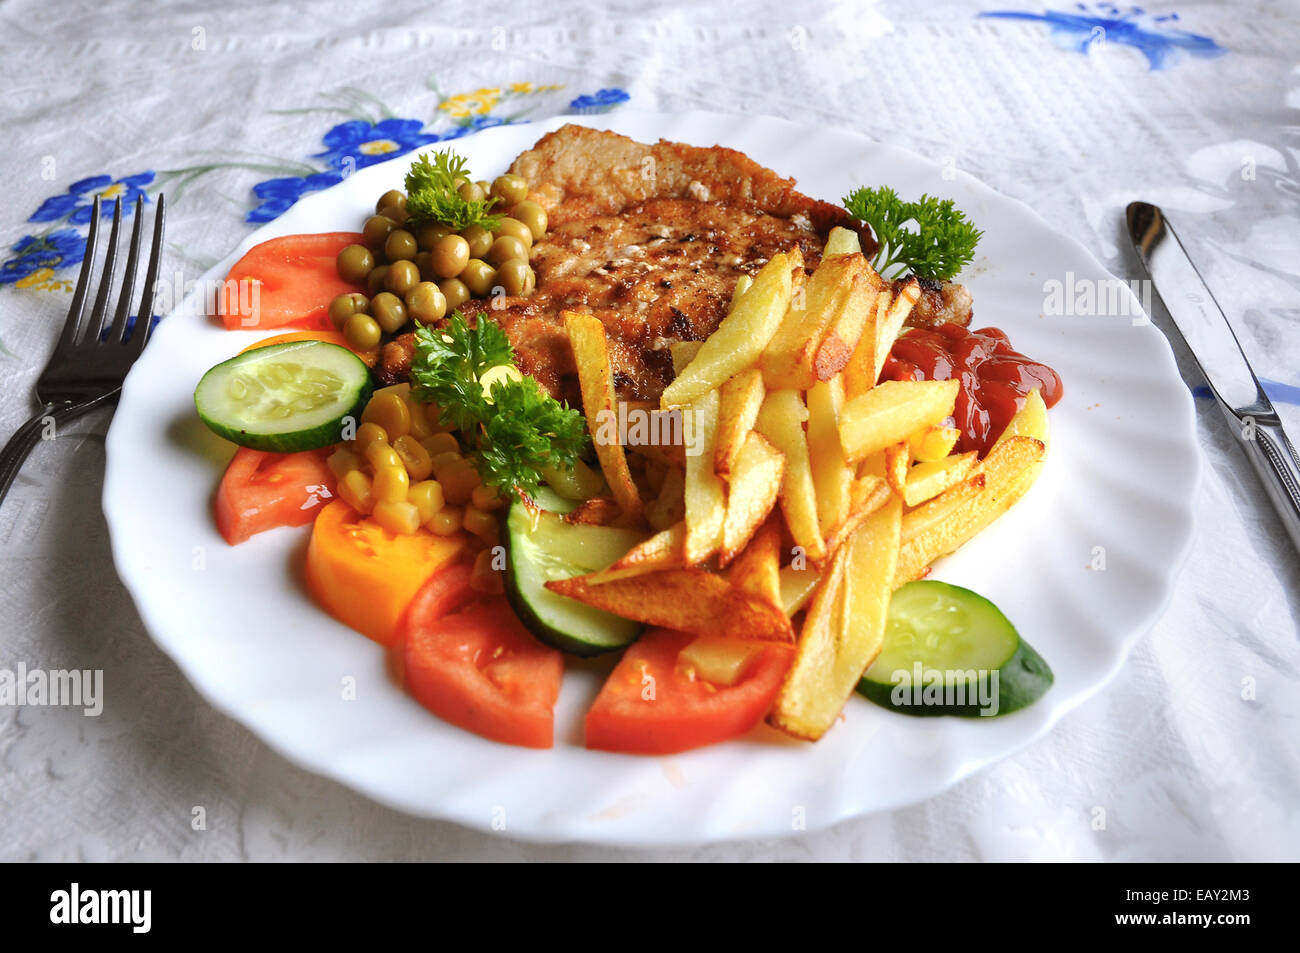 Unhealthy meal of chicken and chips - Stock Image